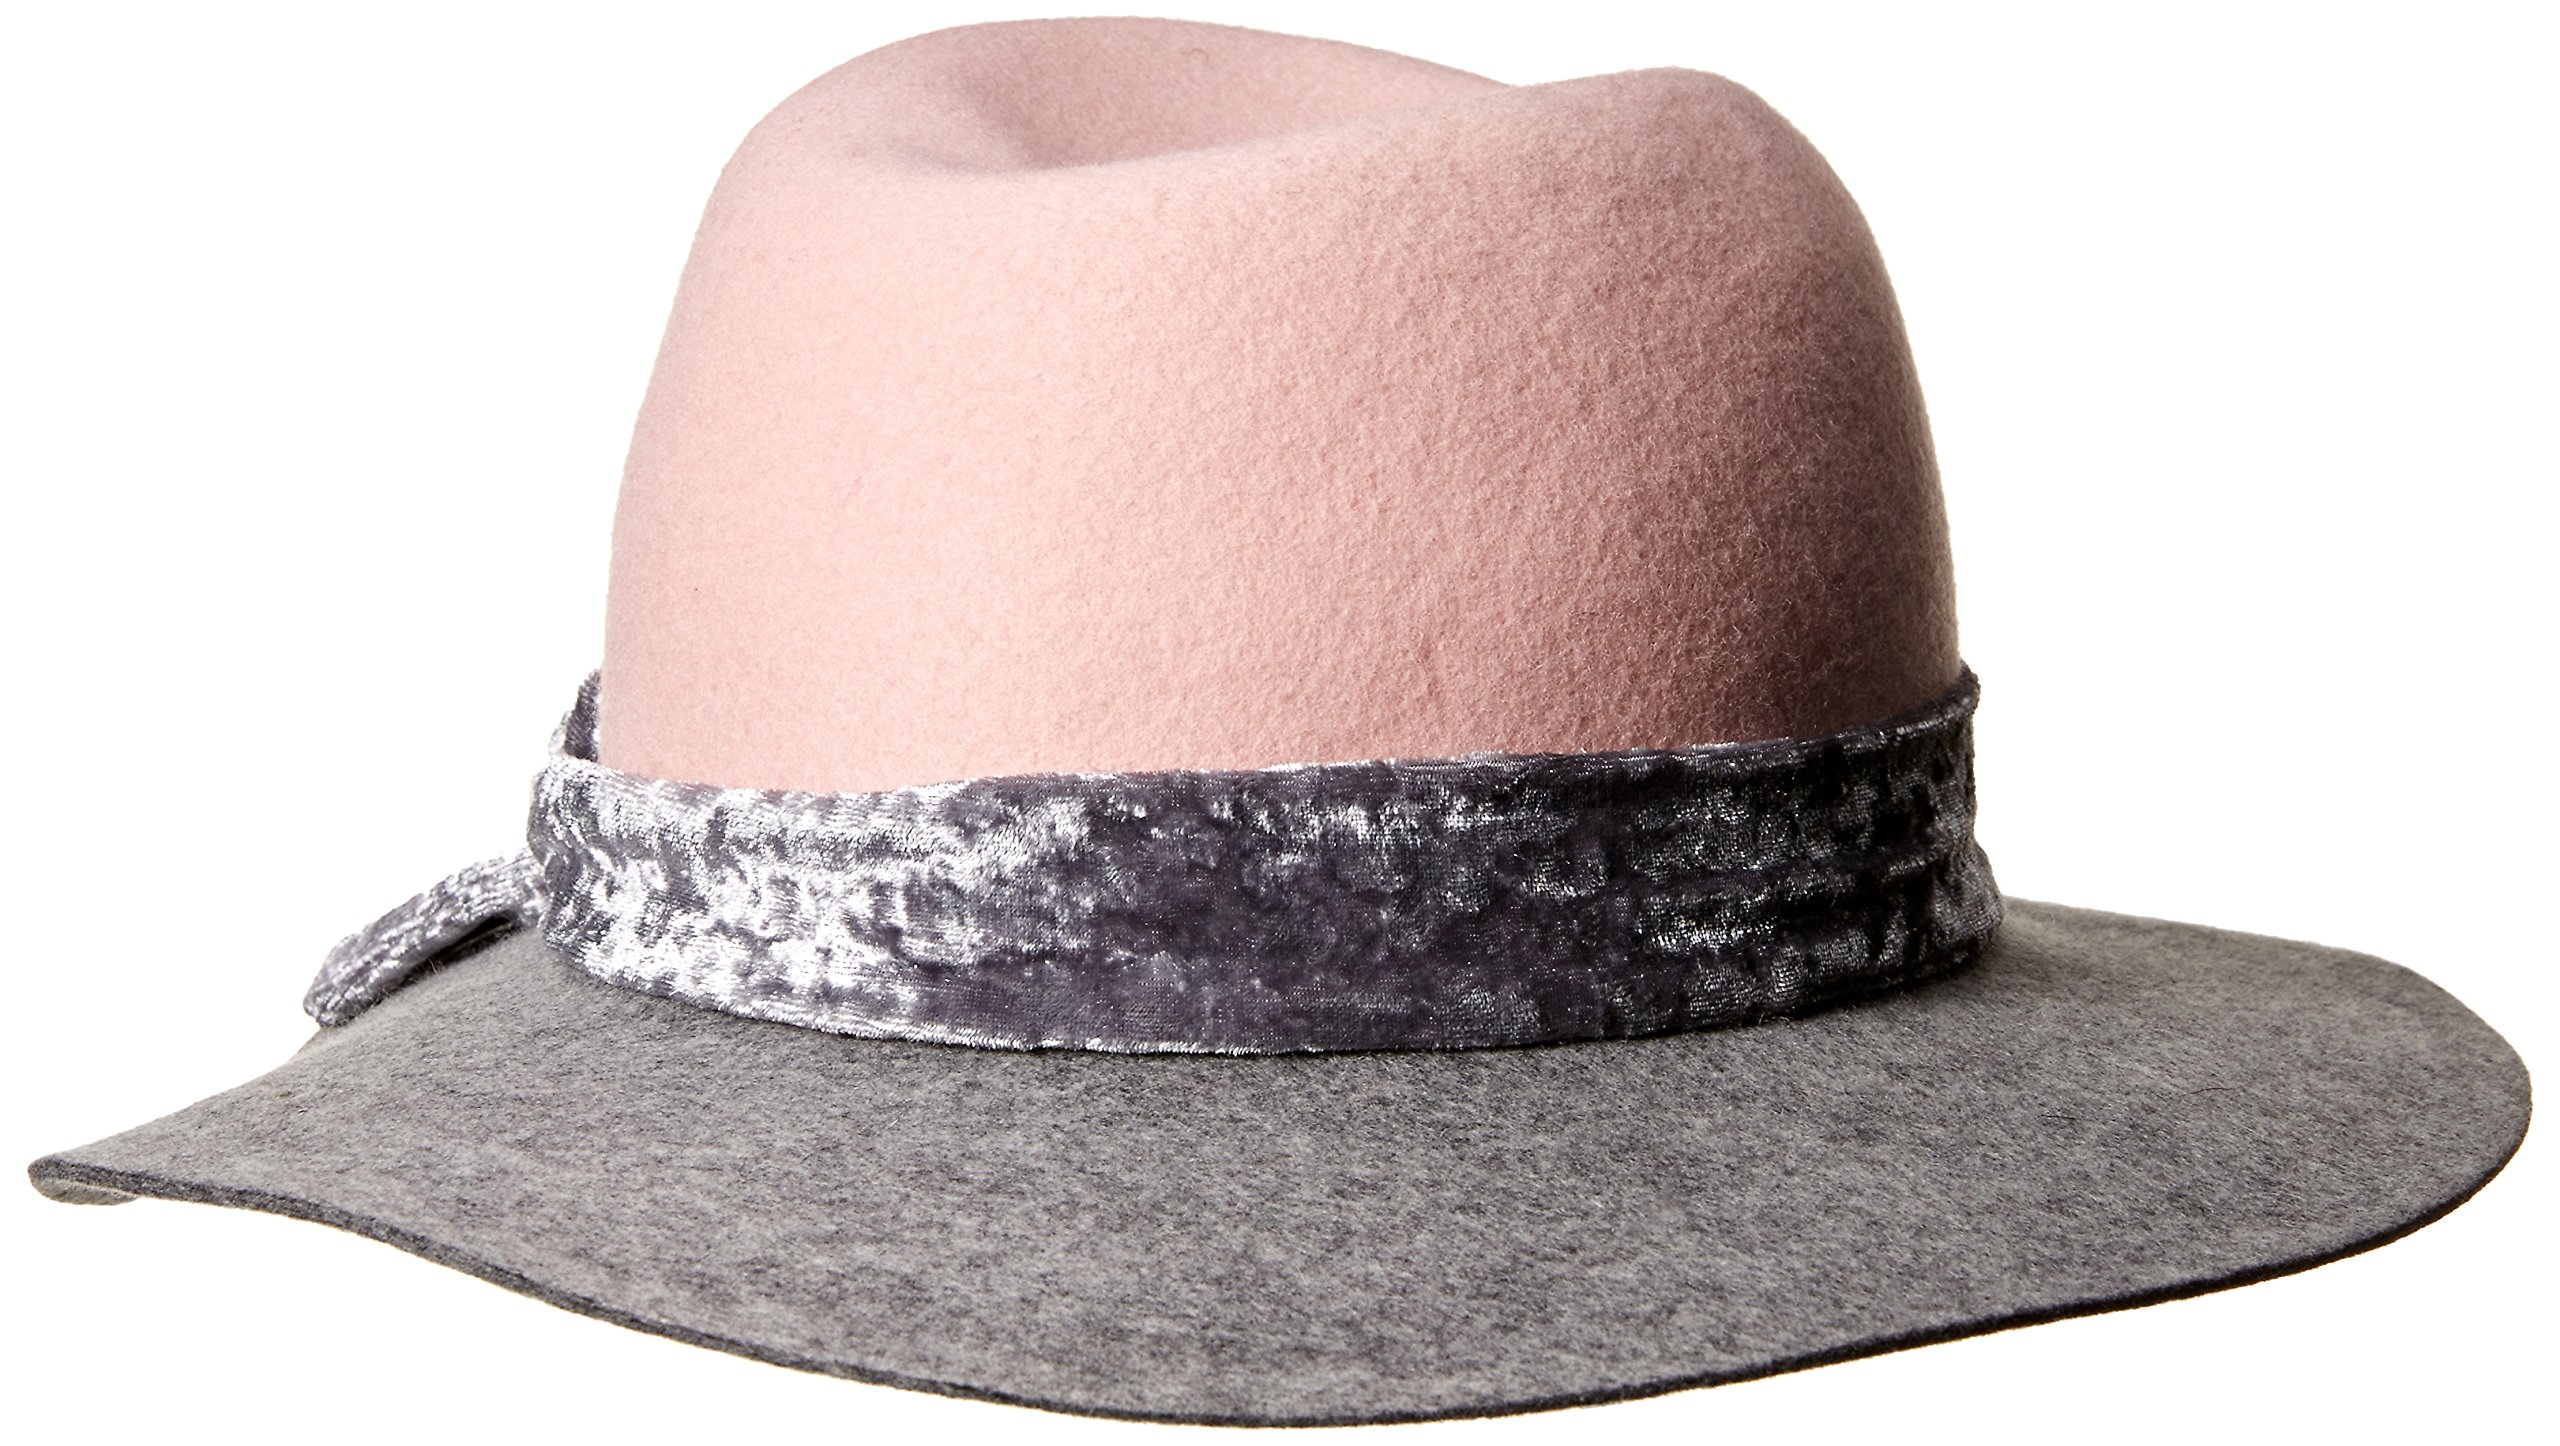 Orchid Row Women's Fashion Ranger Hat with Velvet Band Grey/Pink O/S by Orchid Row (Image #2)